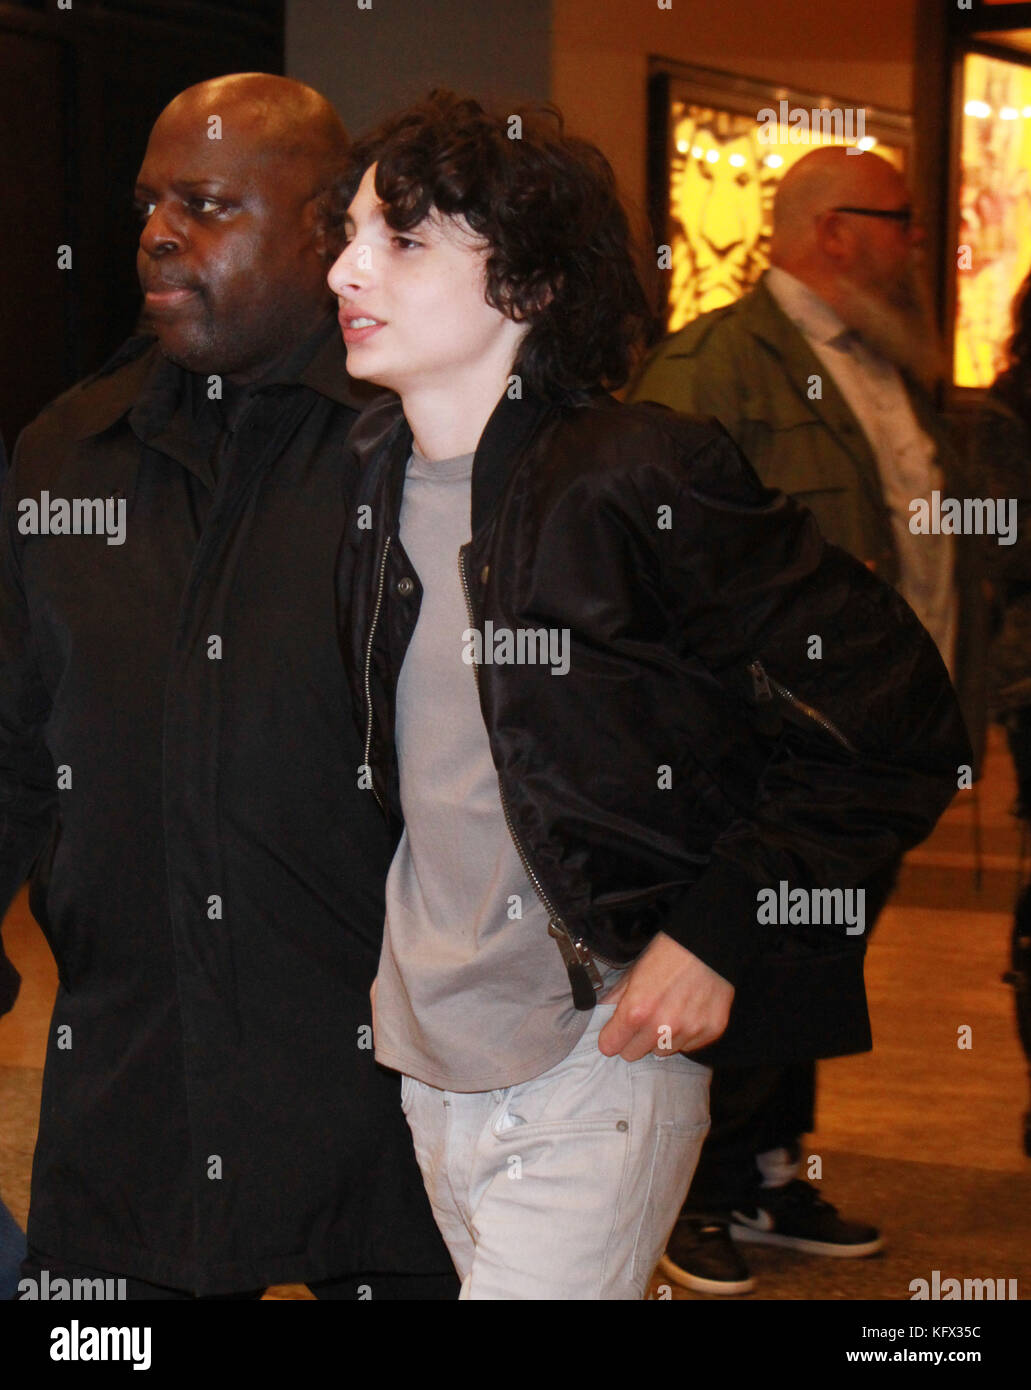 New York, NY, USA. 01st Nov, 2017. Finn Wolfhard at MTV TRL to talk about the new season 2 of Stranger Things in - Stock Image